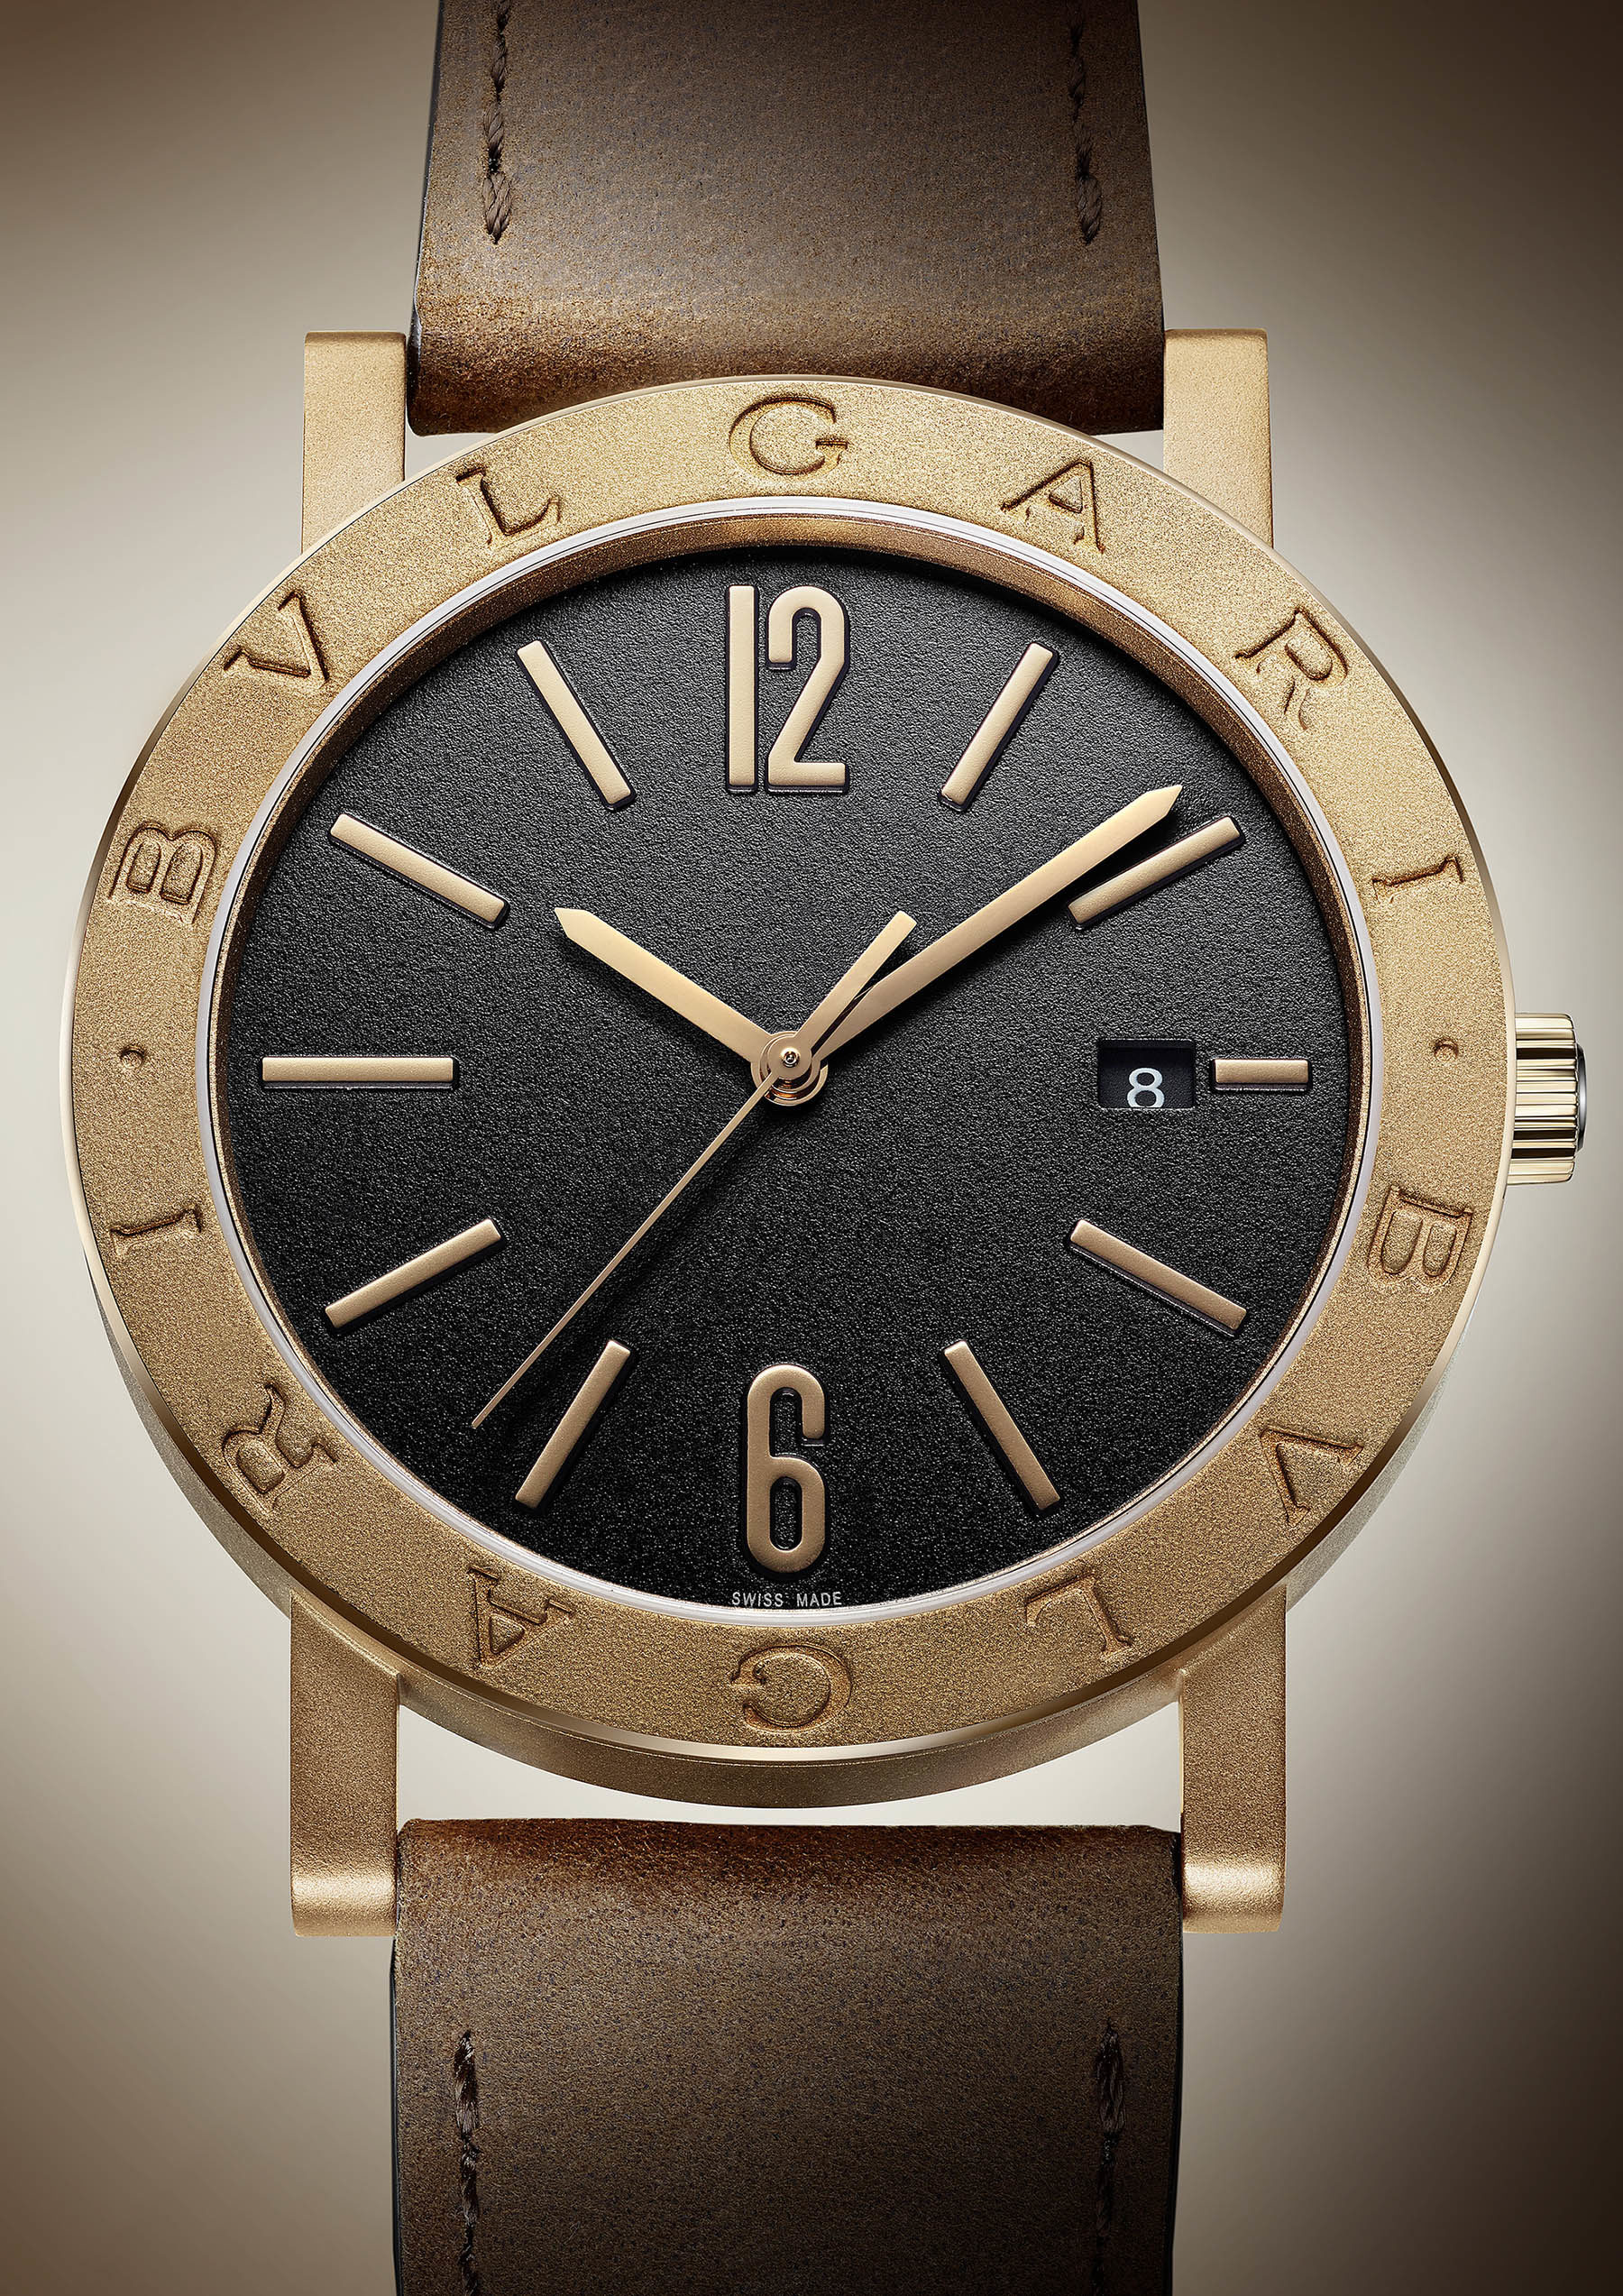 857166cb0d0cd ... continuously innovating while preserving its original DNA combining  classicism and modernism